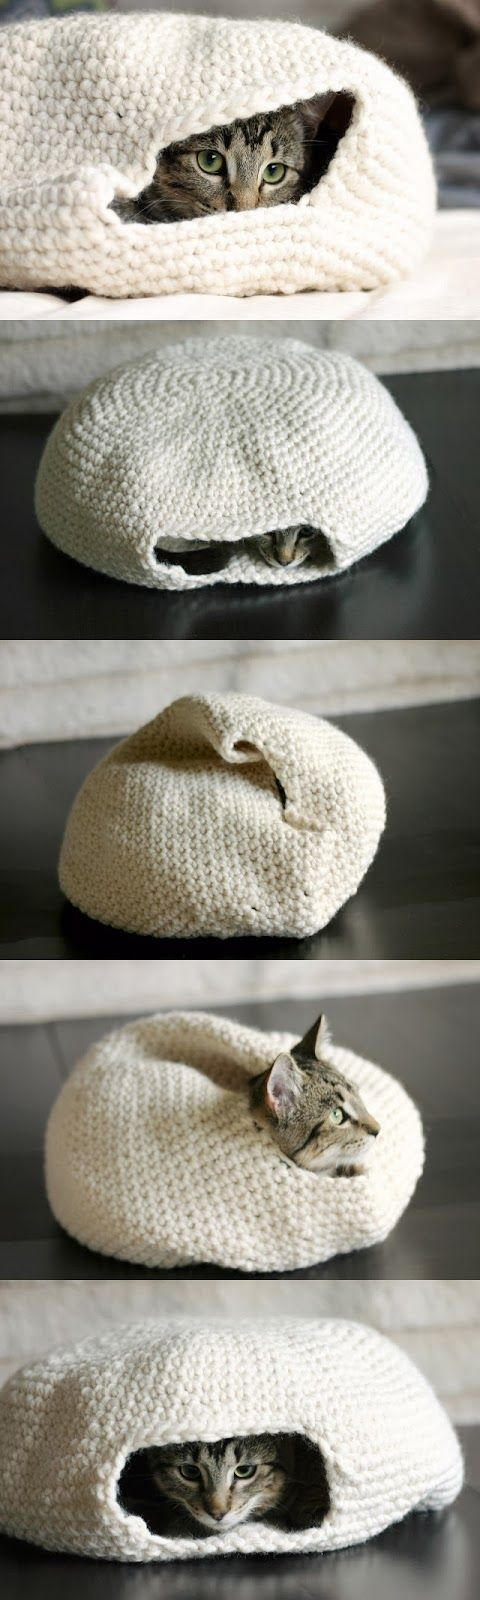 Handmade crochet cat bed - à trouver en version tricot... !